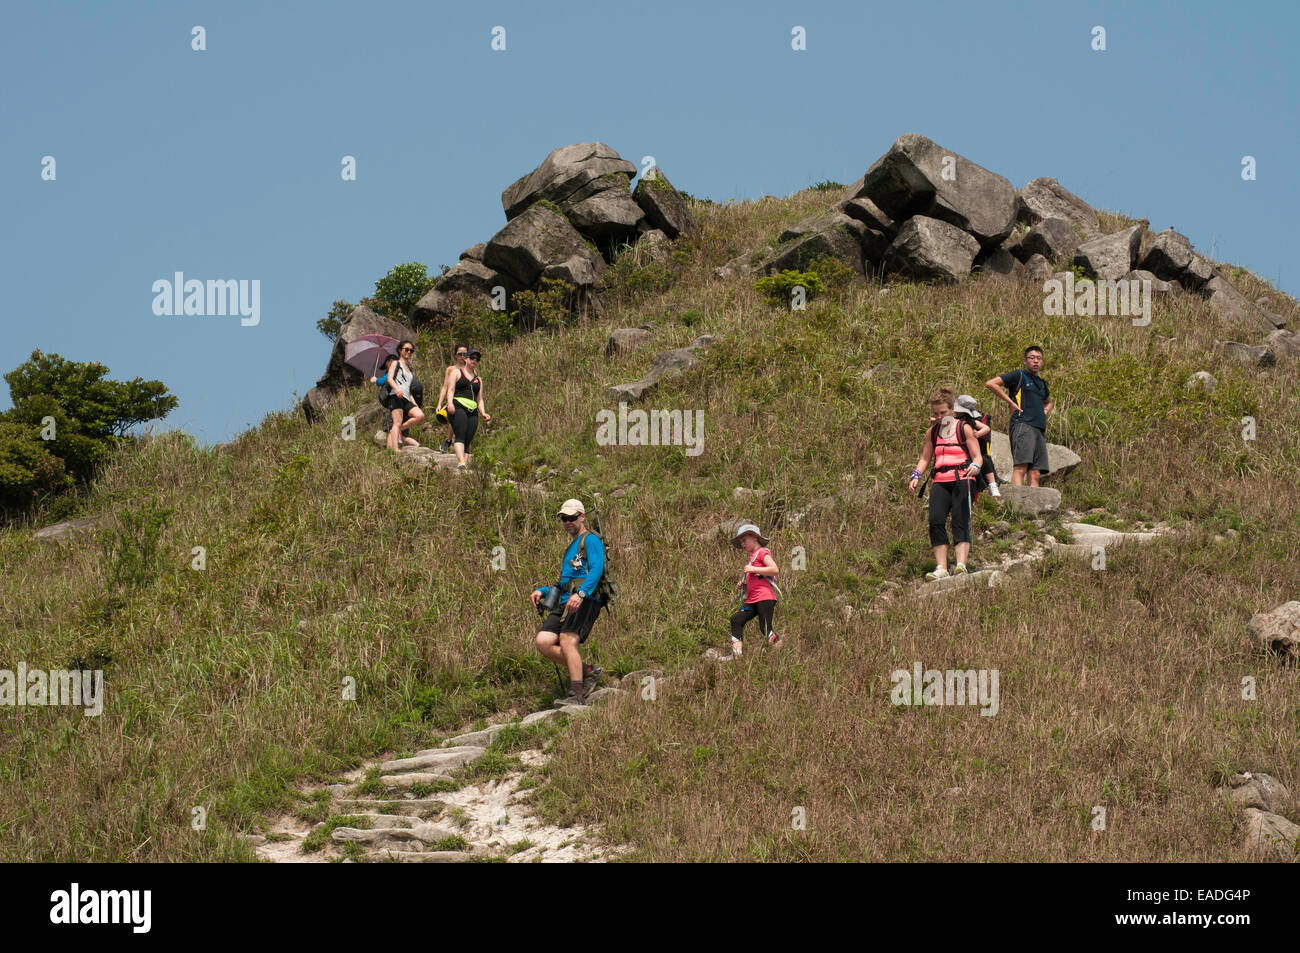 Hikers walking down the steep trails of Sunset Peak, Tai Tung Shan, located on Lantau Island Hong Kong China - Stock Image